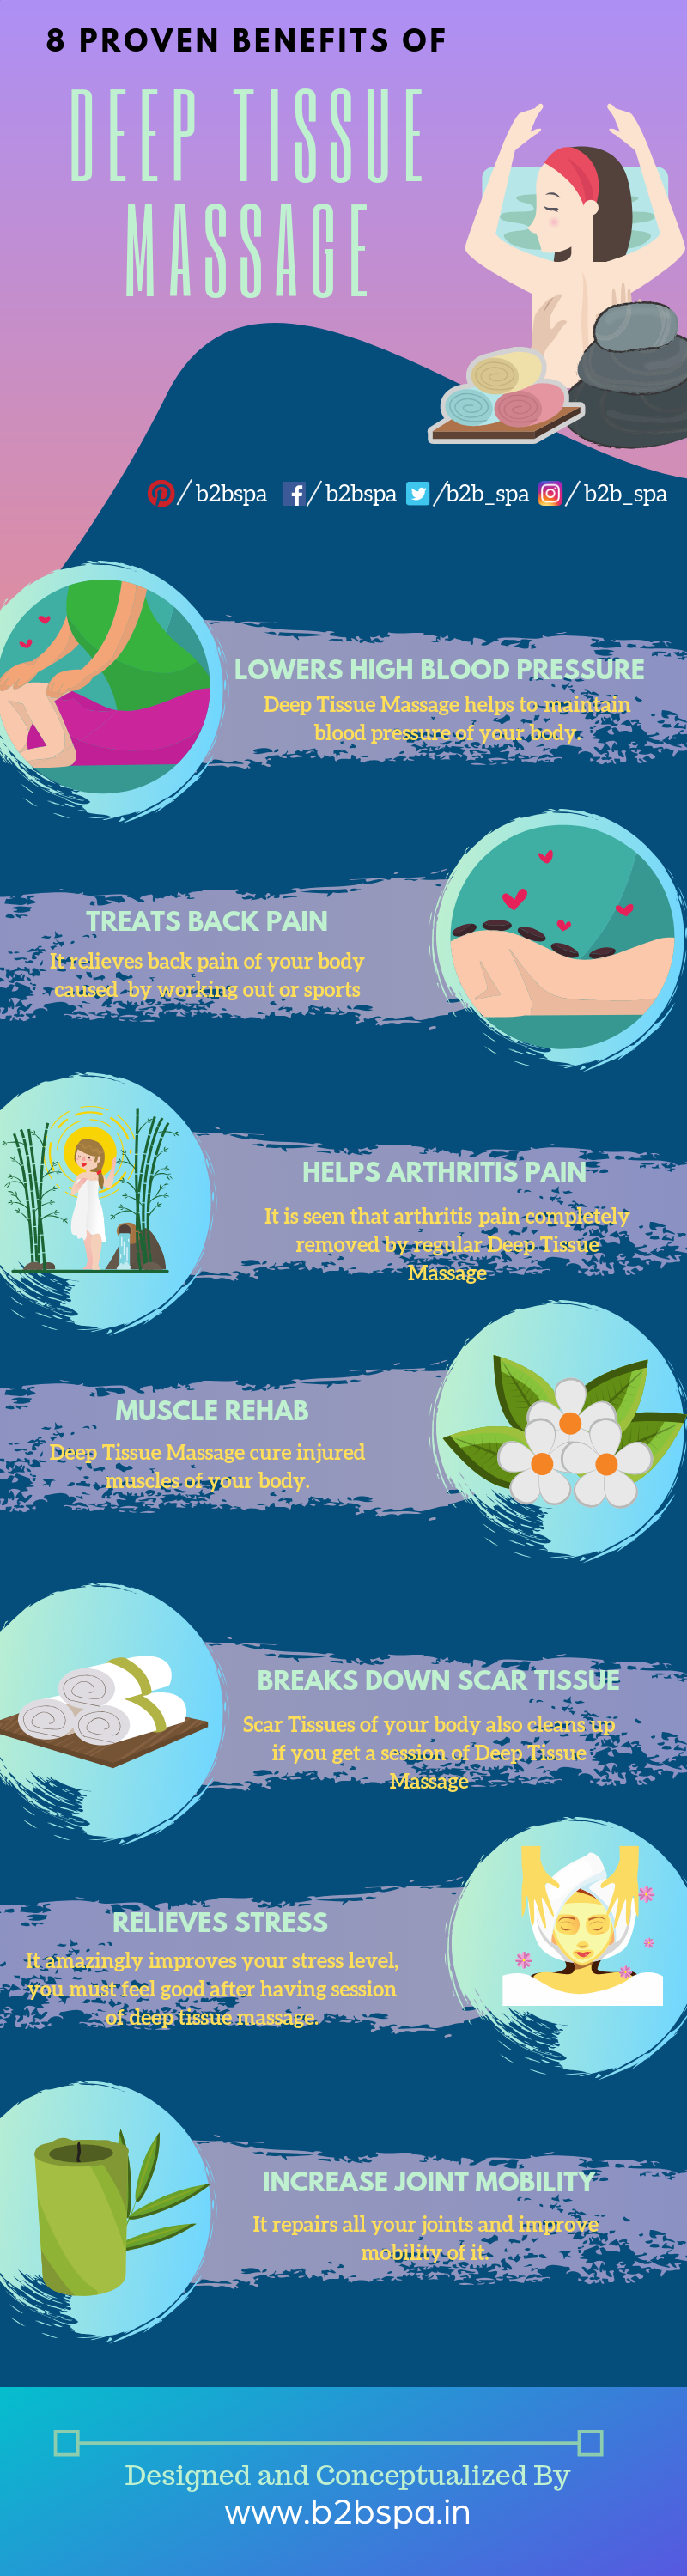 benefits-of-deep-tissue-massage-infographic-plaza